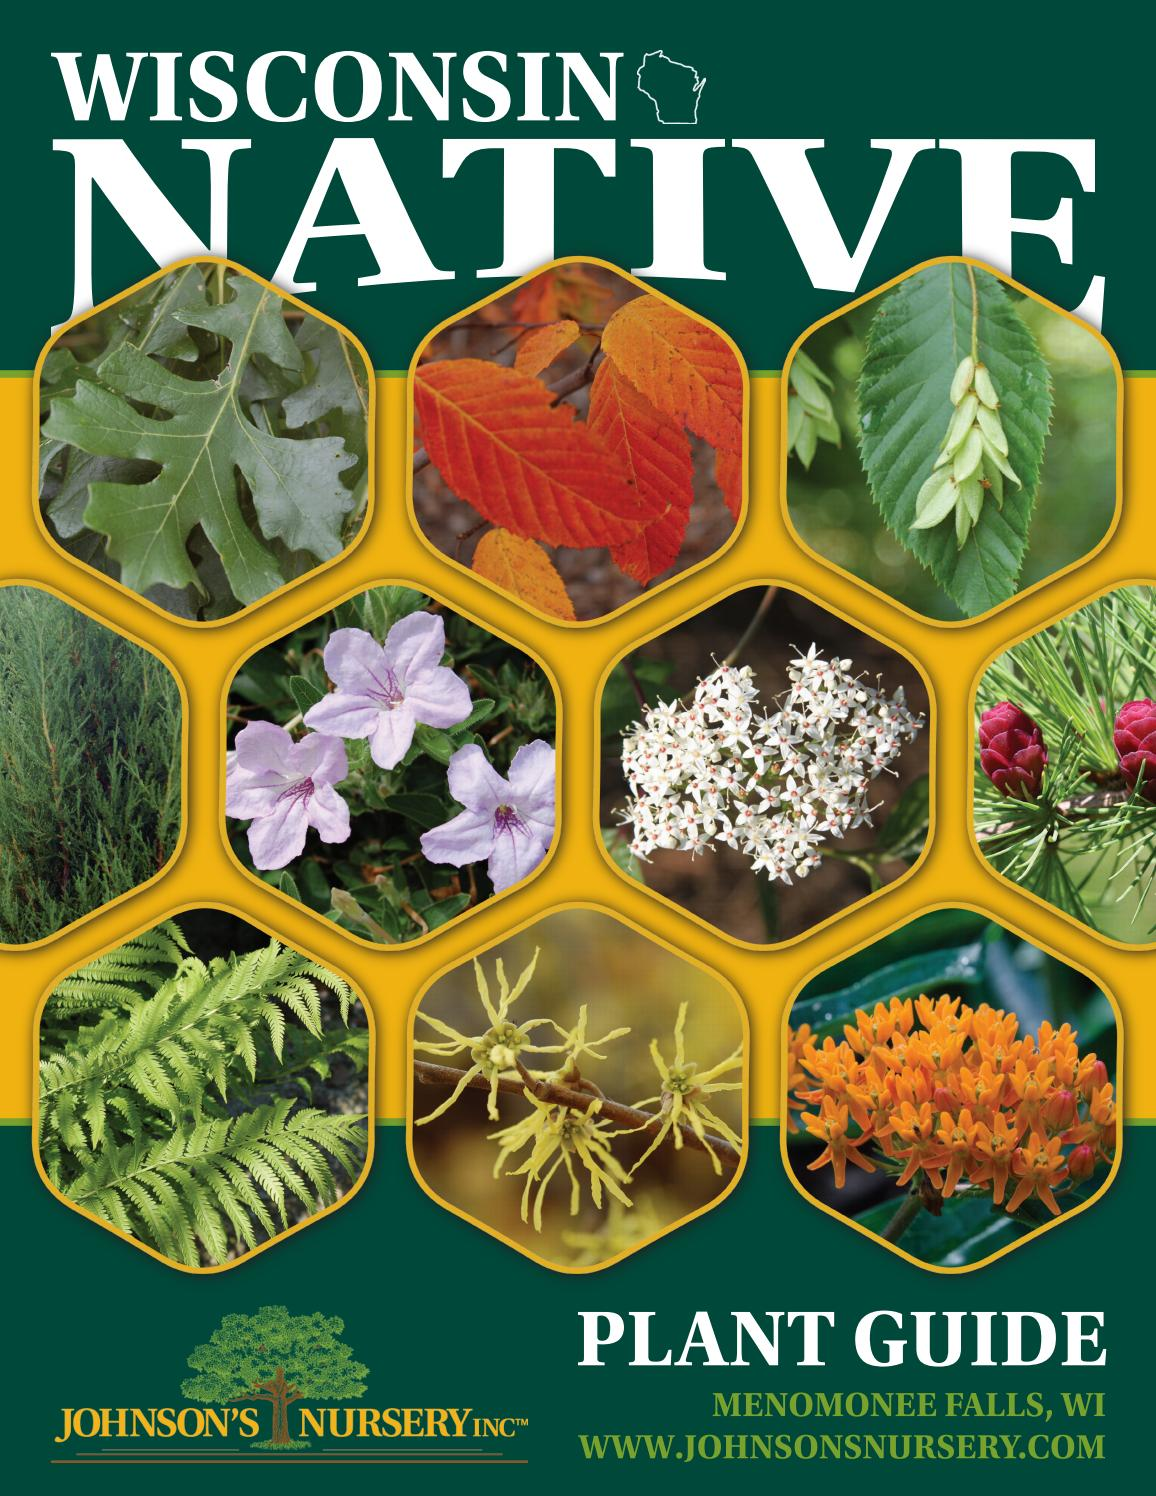 Wisconsin Native Plant Guide By Johnson